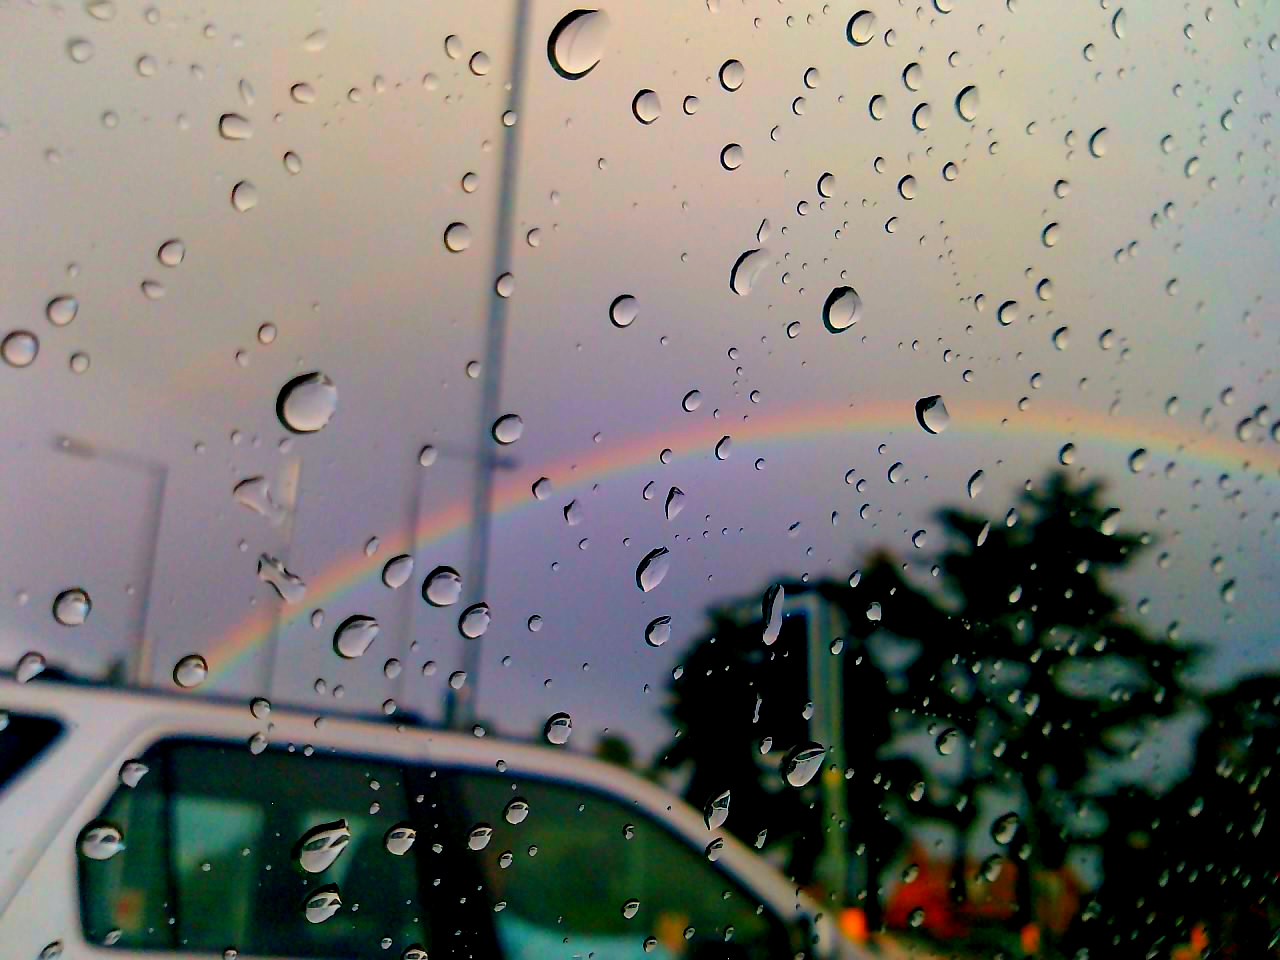 Poets Of The Fall Wallpaper Nikita Vattas We Cannot Have A Rainbow Without A Little Rain